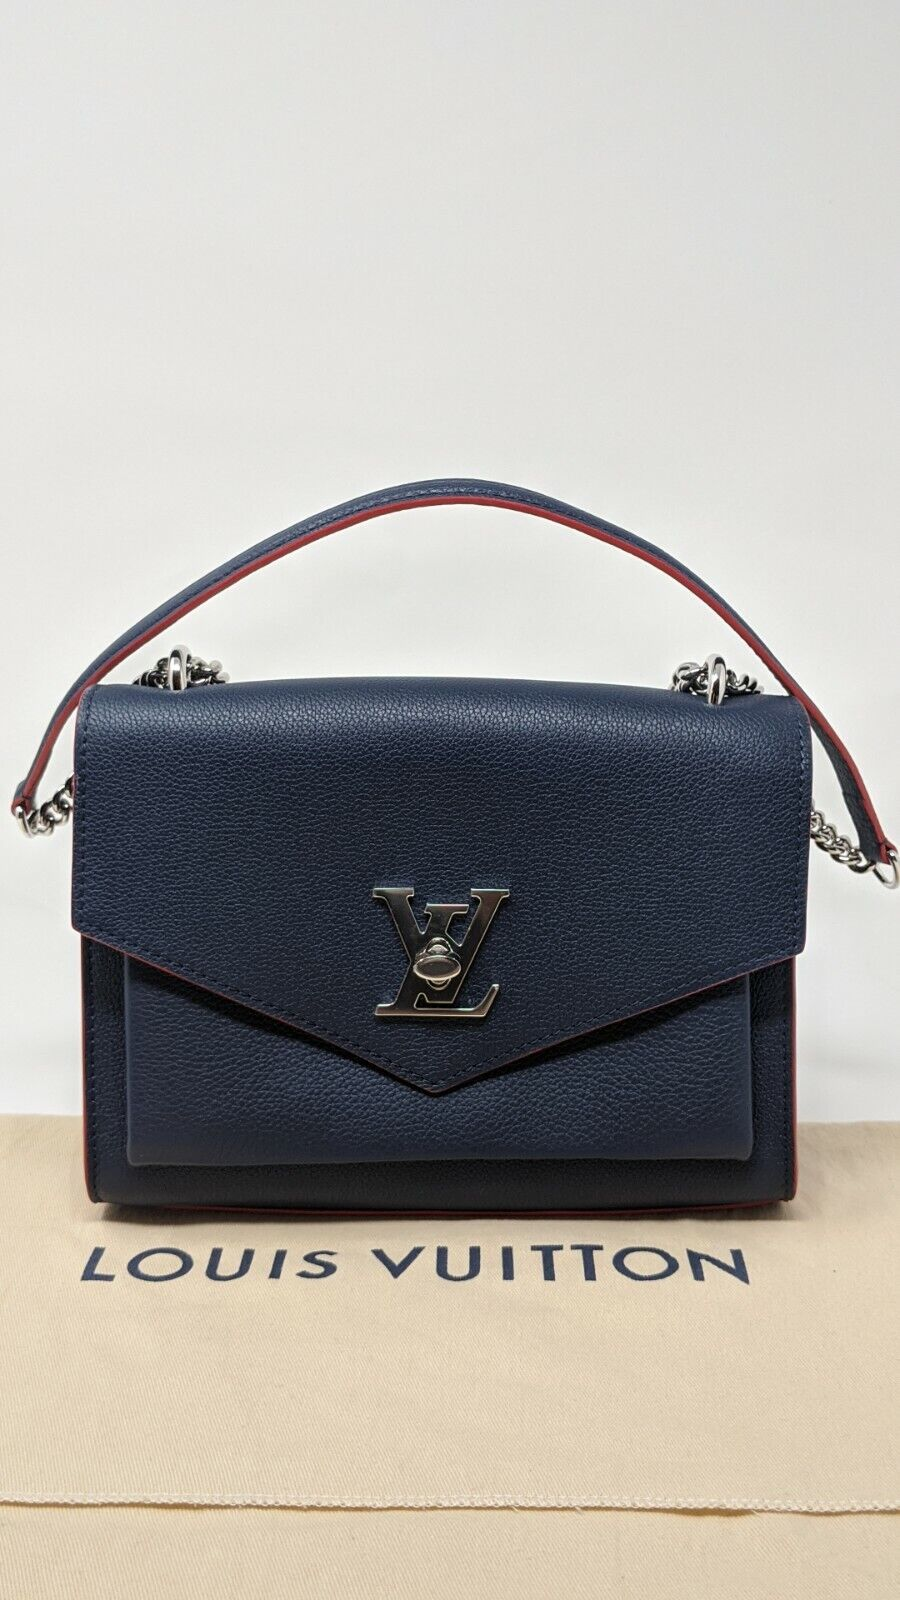 Louis Vuitton Mylockme Bb Navy Blue Red Leather Cross Body Bag M53197